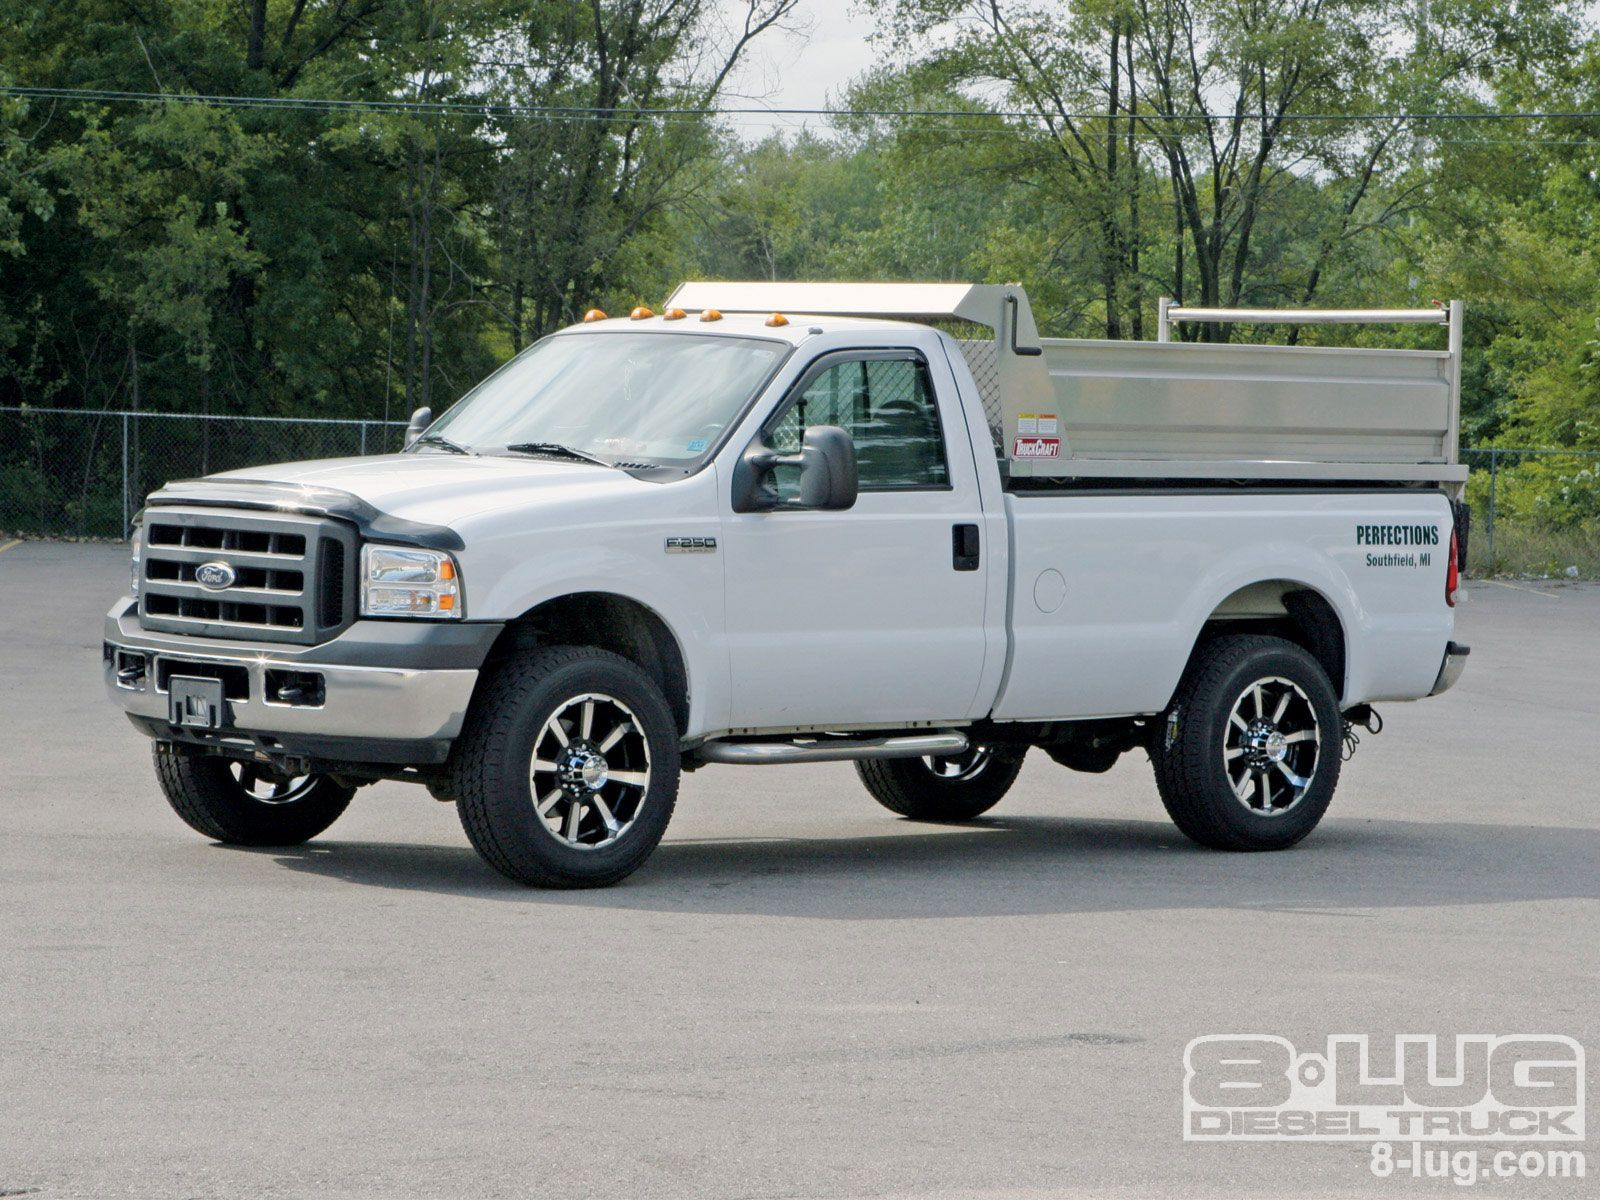 Images about trucks amp cars on pinterest ford trucks and ford trucks - Ford Discount Wheels And Tires Find This Pin And More On Ford F150 Trucks